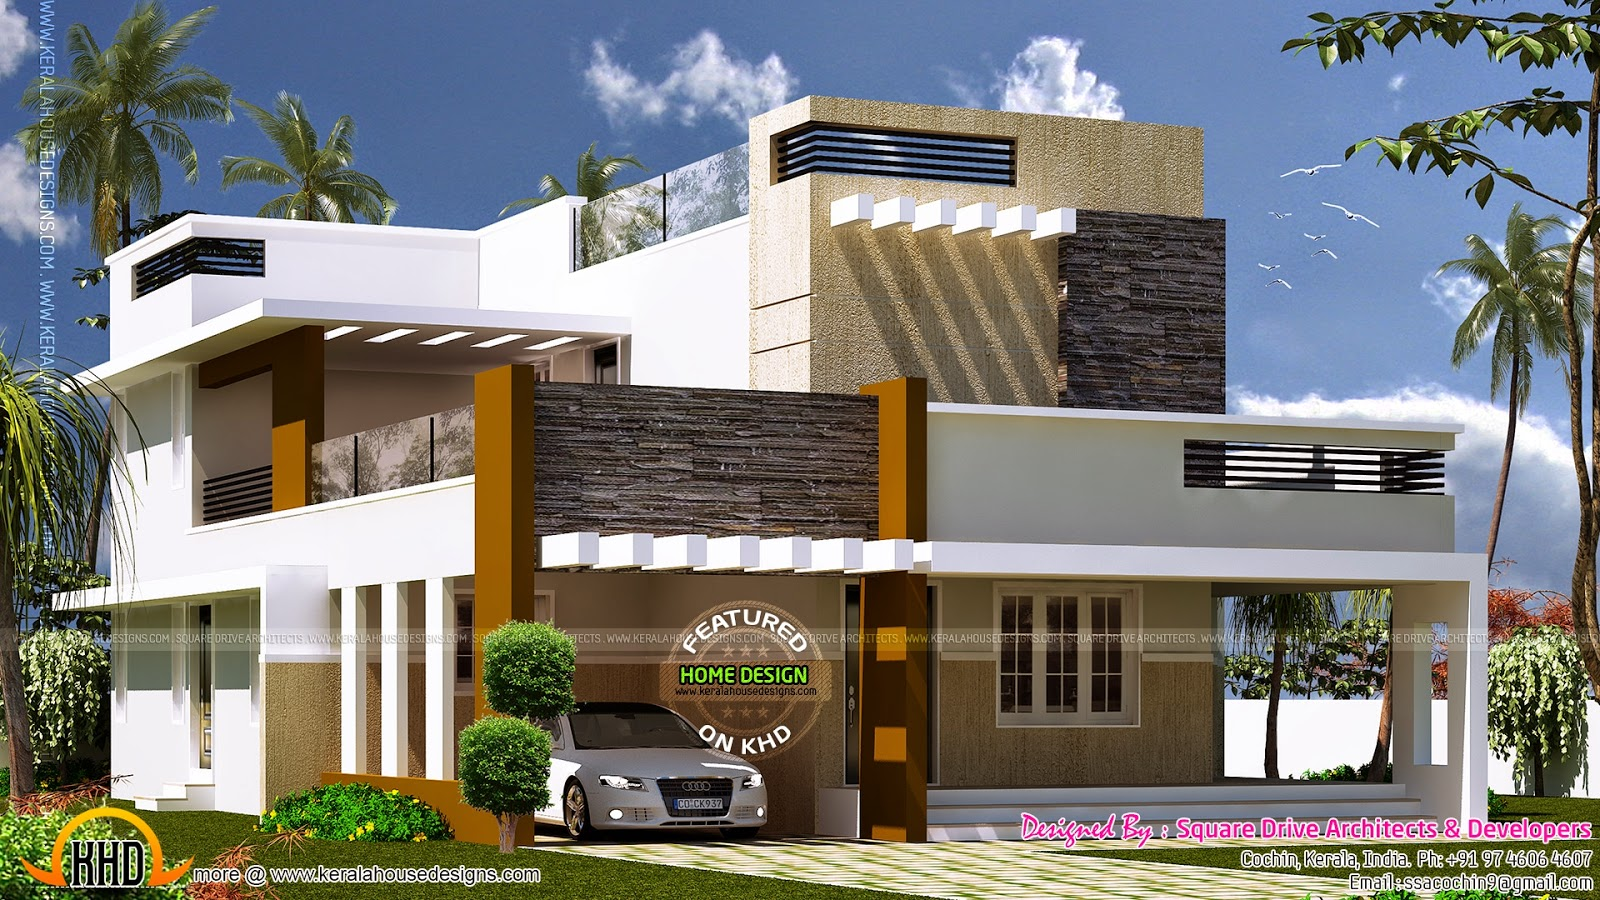 Exterior design of contemporary villa kerala home design for Modern small home designs india